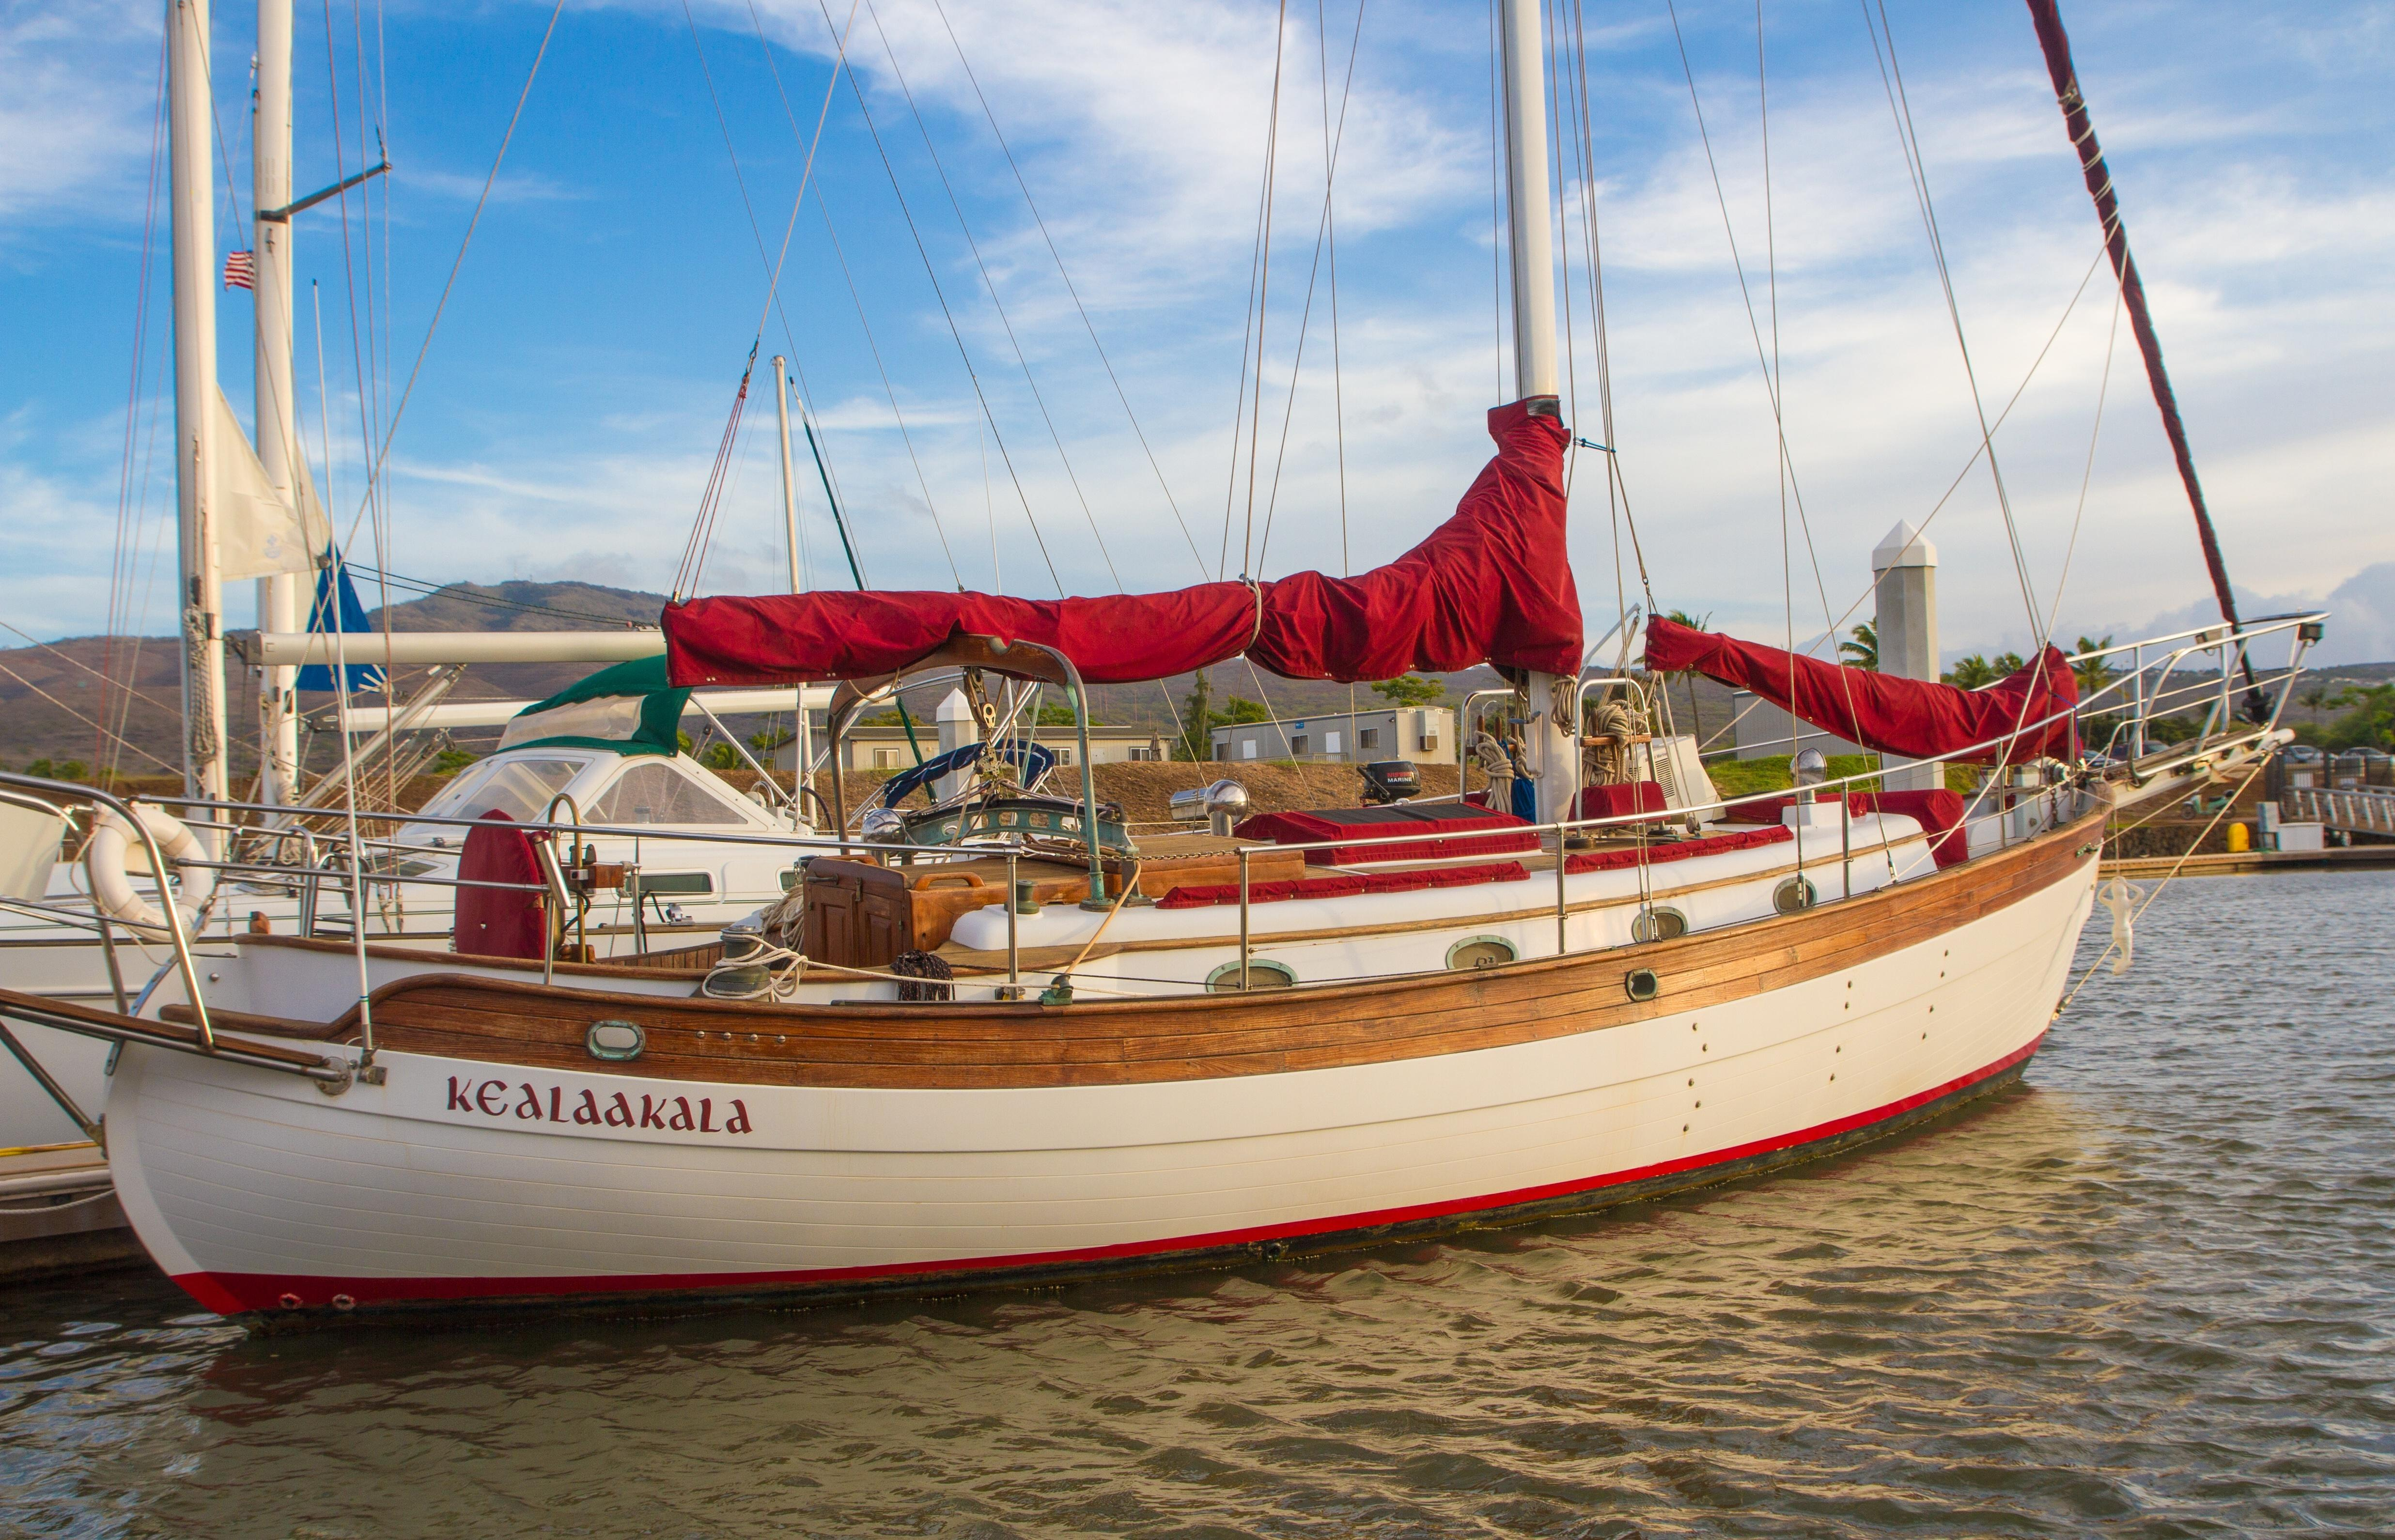 3989932_20121220123833_1_XLARGE&w=4944&h=3180&t=1356035943000 1984 hans christian 38t sail boat for sale www yachtworld com Simple Boat Wiring Diagram at n-0.co